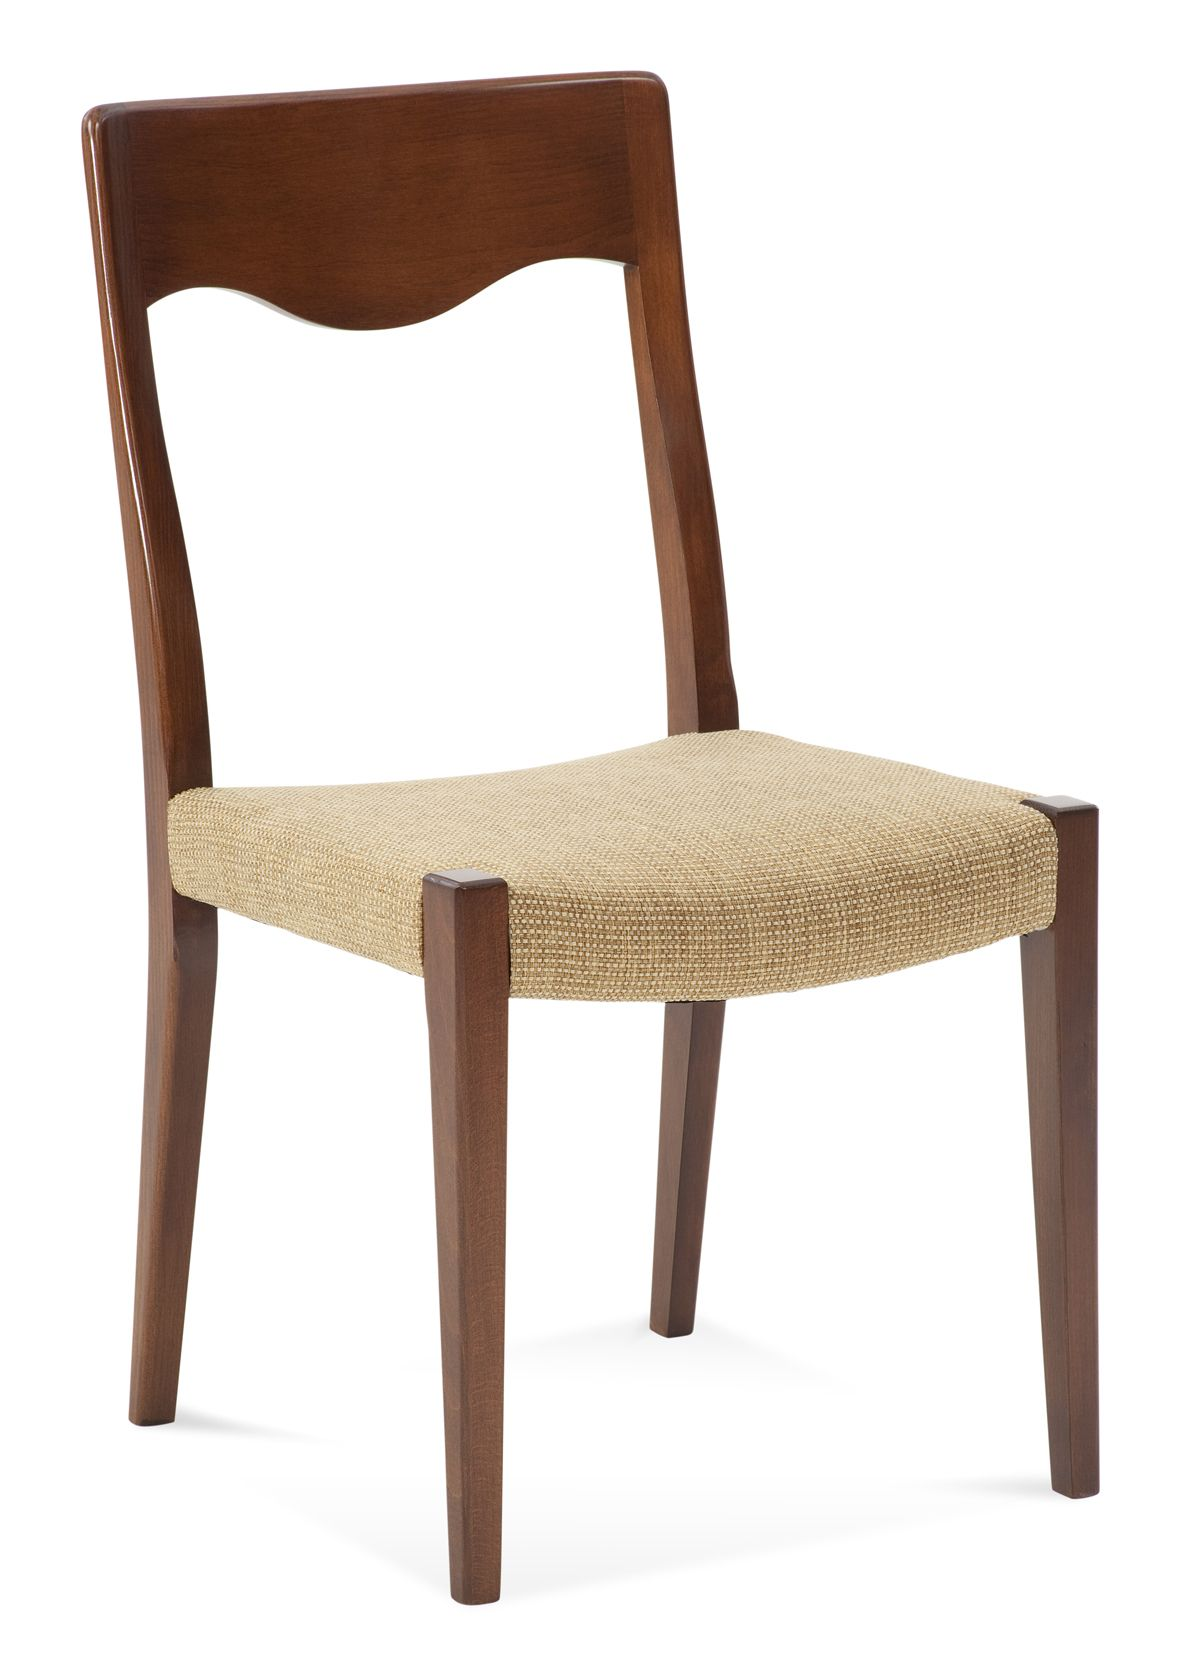 Saloom model 108 upholstered harvest custom dining chair with straw upholstery